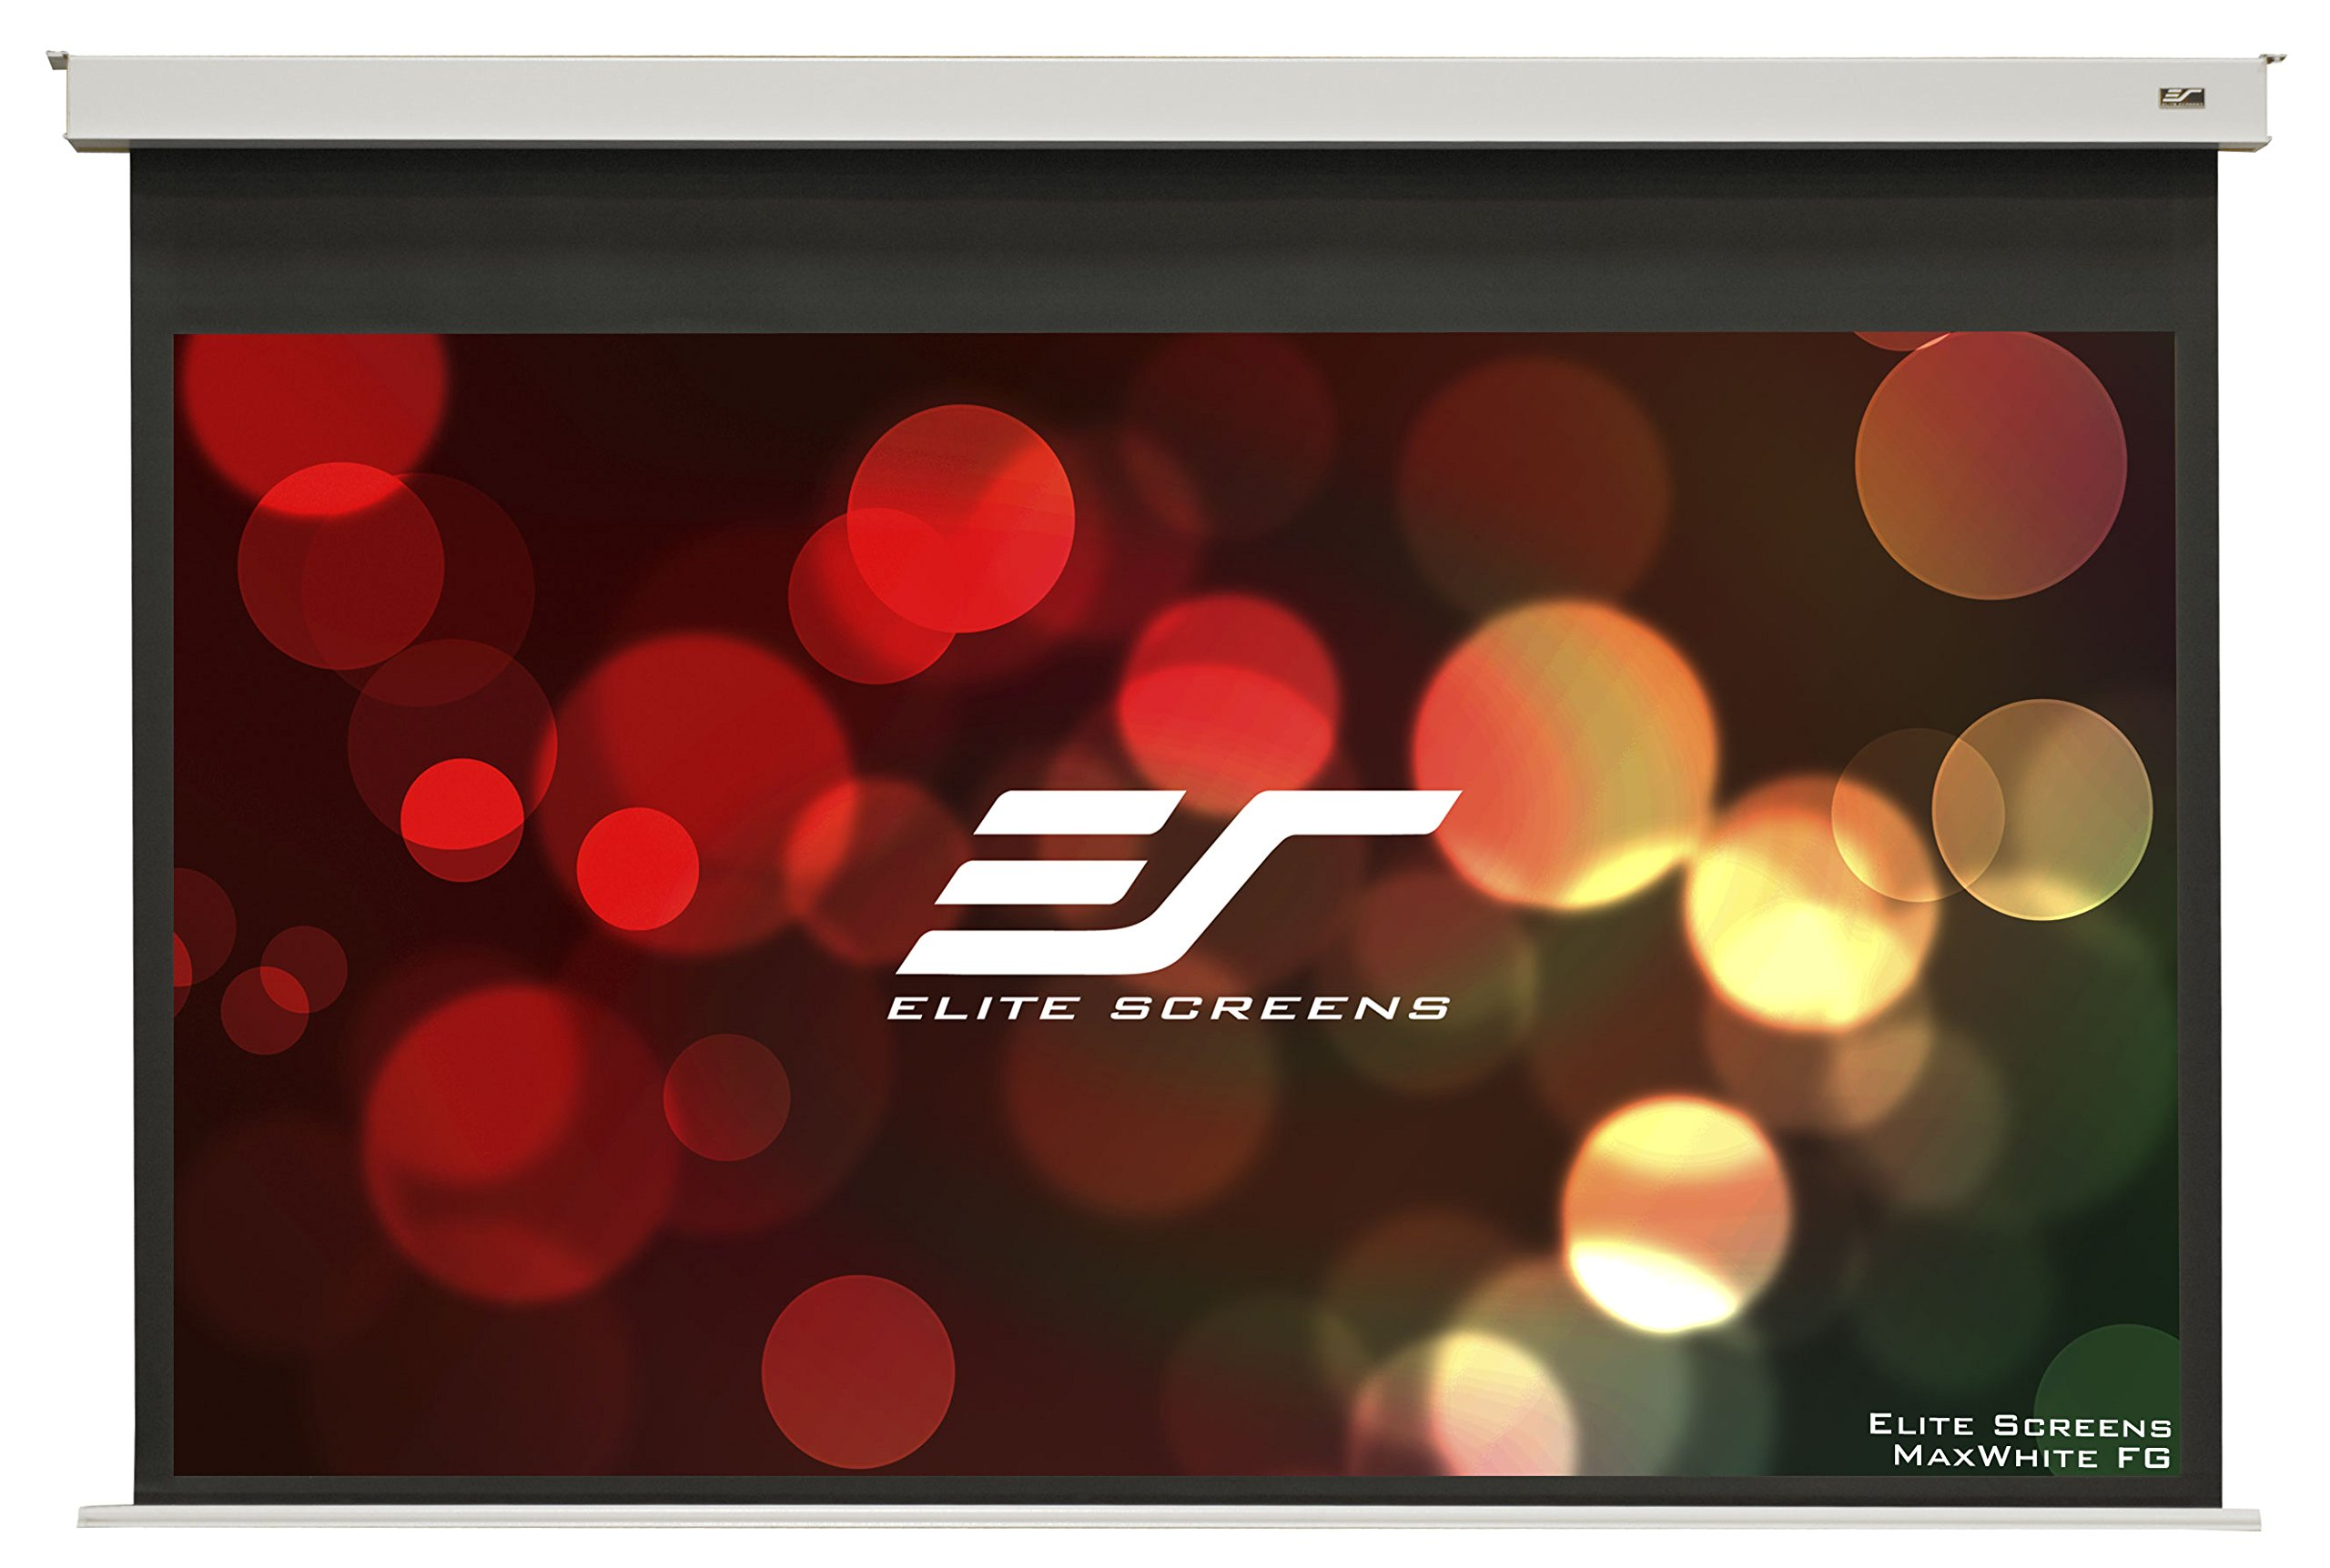 Elite Screens Evanesce B, 120-inch 16:9, Recessed Ceiling In-Ceiling Electric Projection Projector Screen, EB120HW2-E8 by Elite Screens